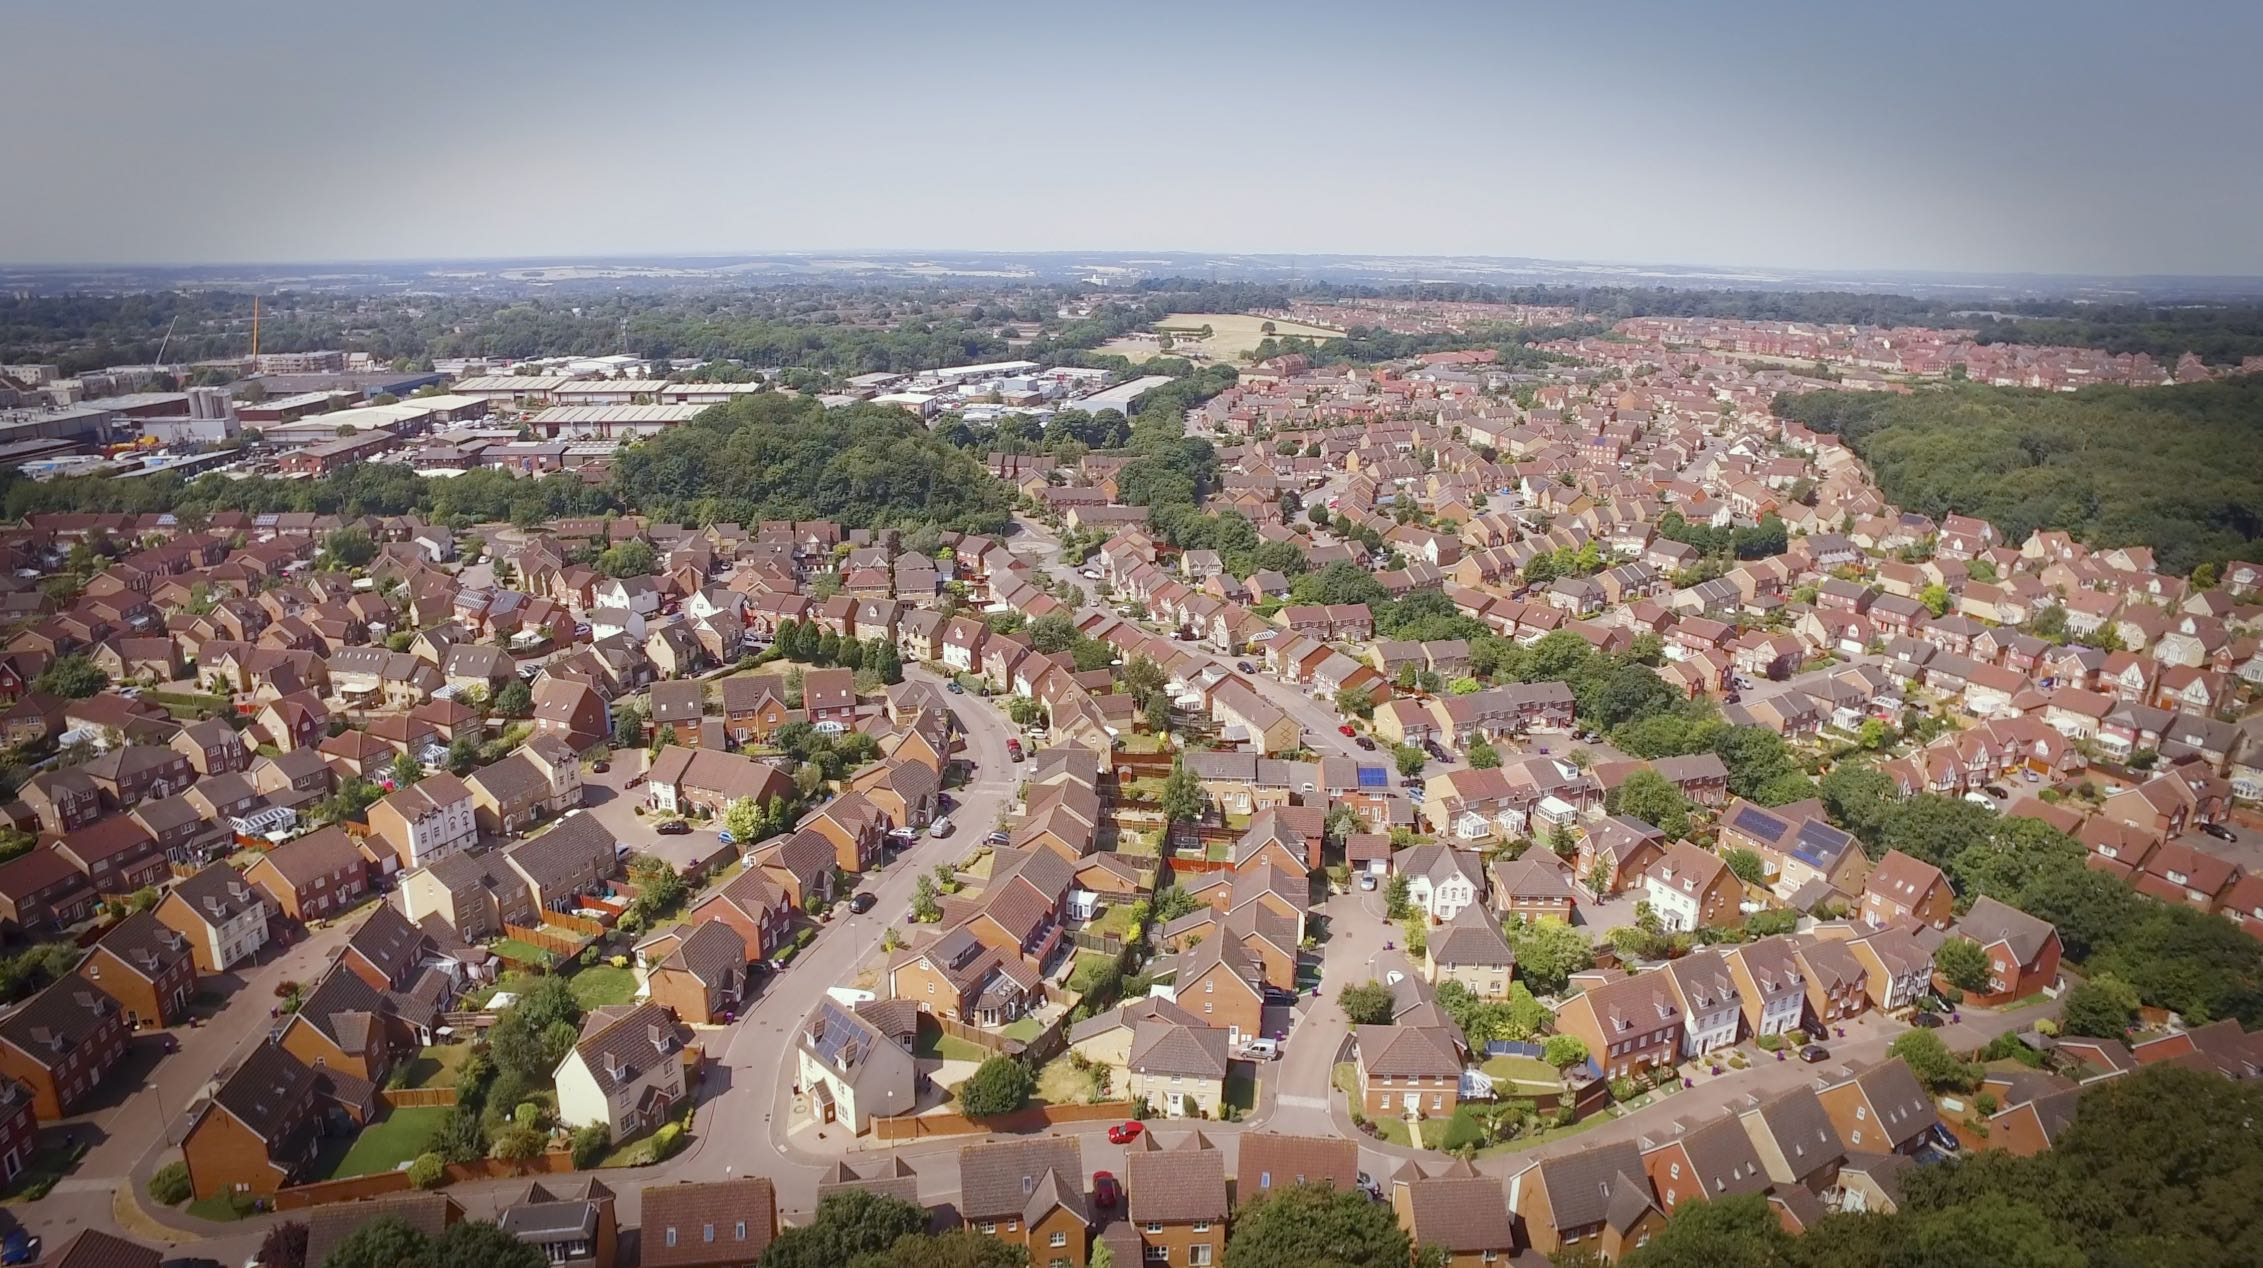 Affordability & Urban Living - Voices of Stevenage